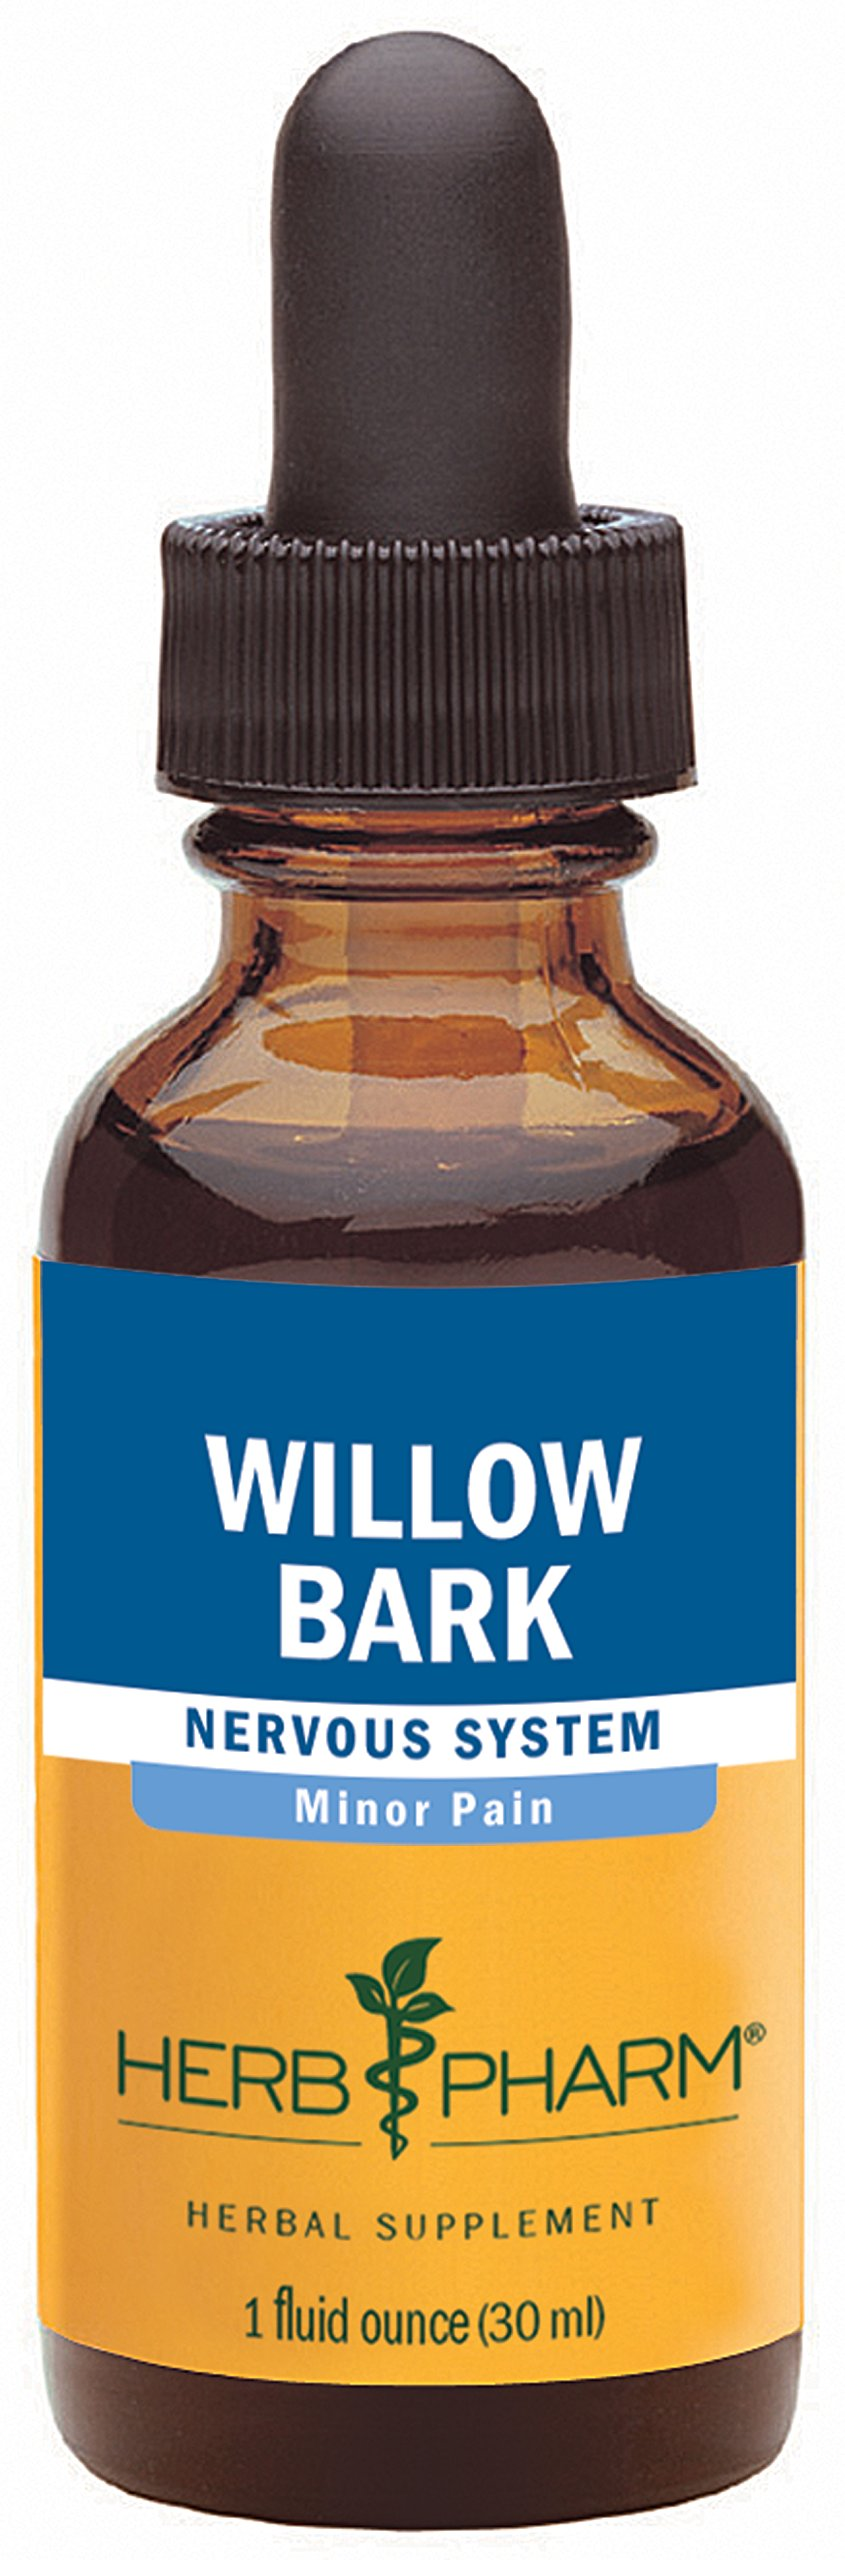 Herb Pharm Willow Bark Extract for Minor Pain - 1 Ounce